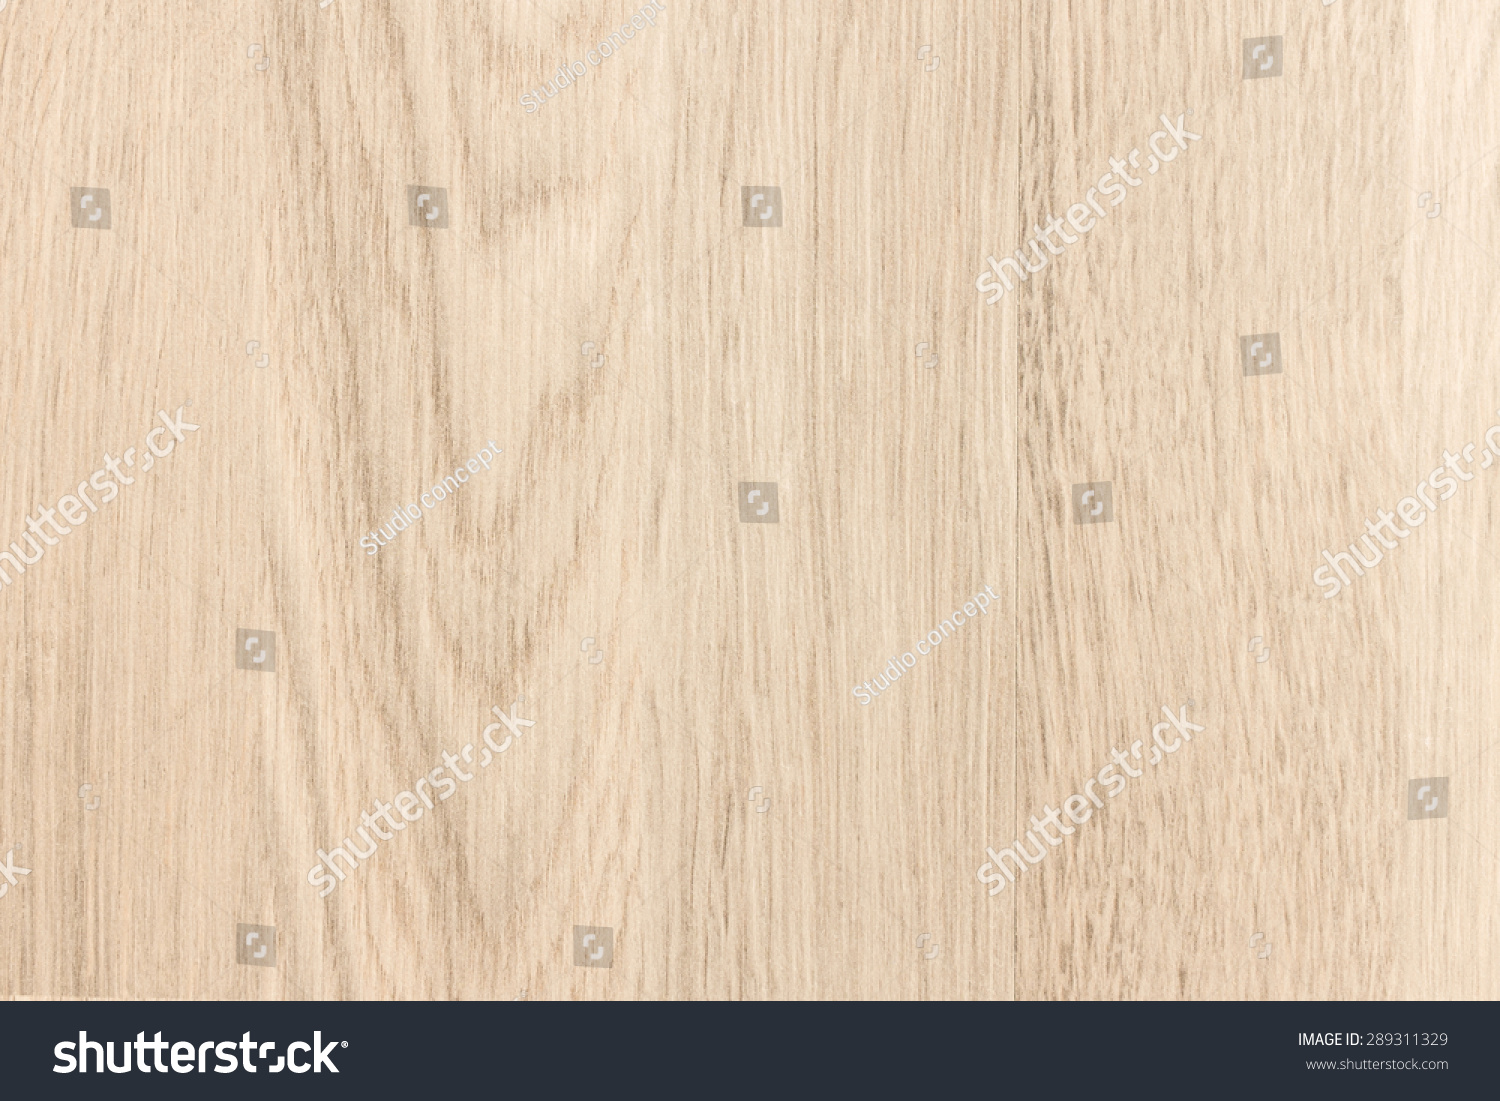 Wood laminate texture seamless background stock photo